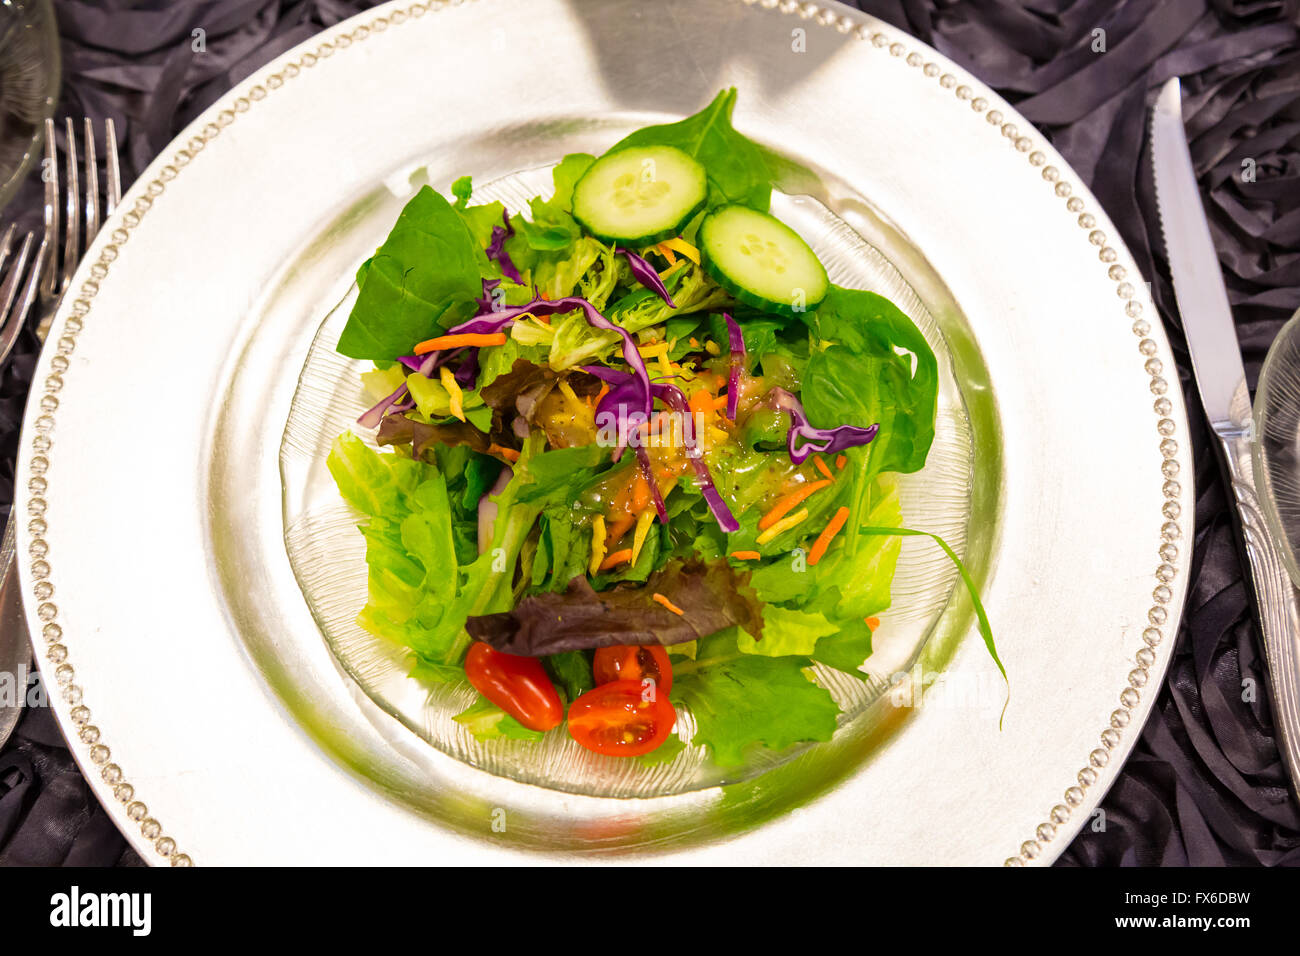 Salad at a wedding reception for guests that want to eat healthy and watch their diet. - Stock Image